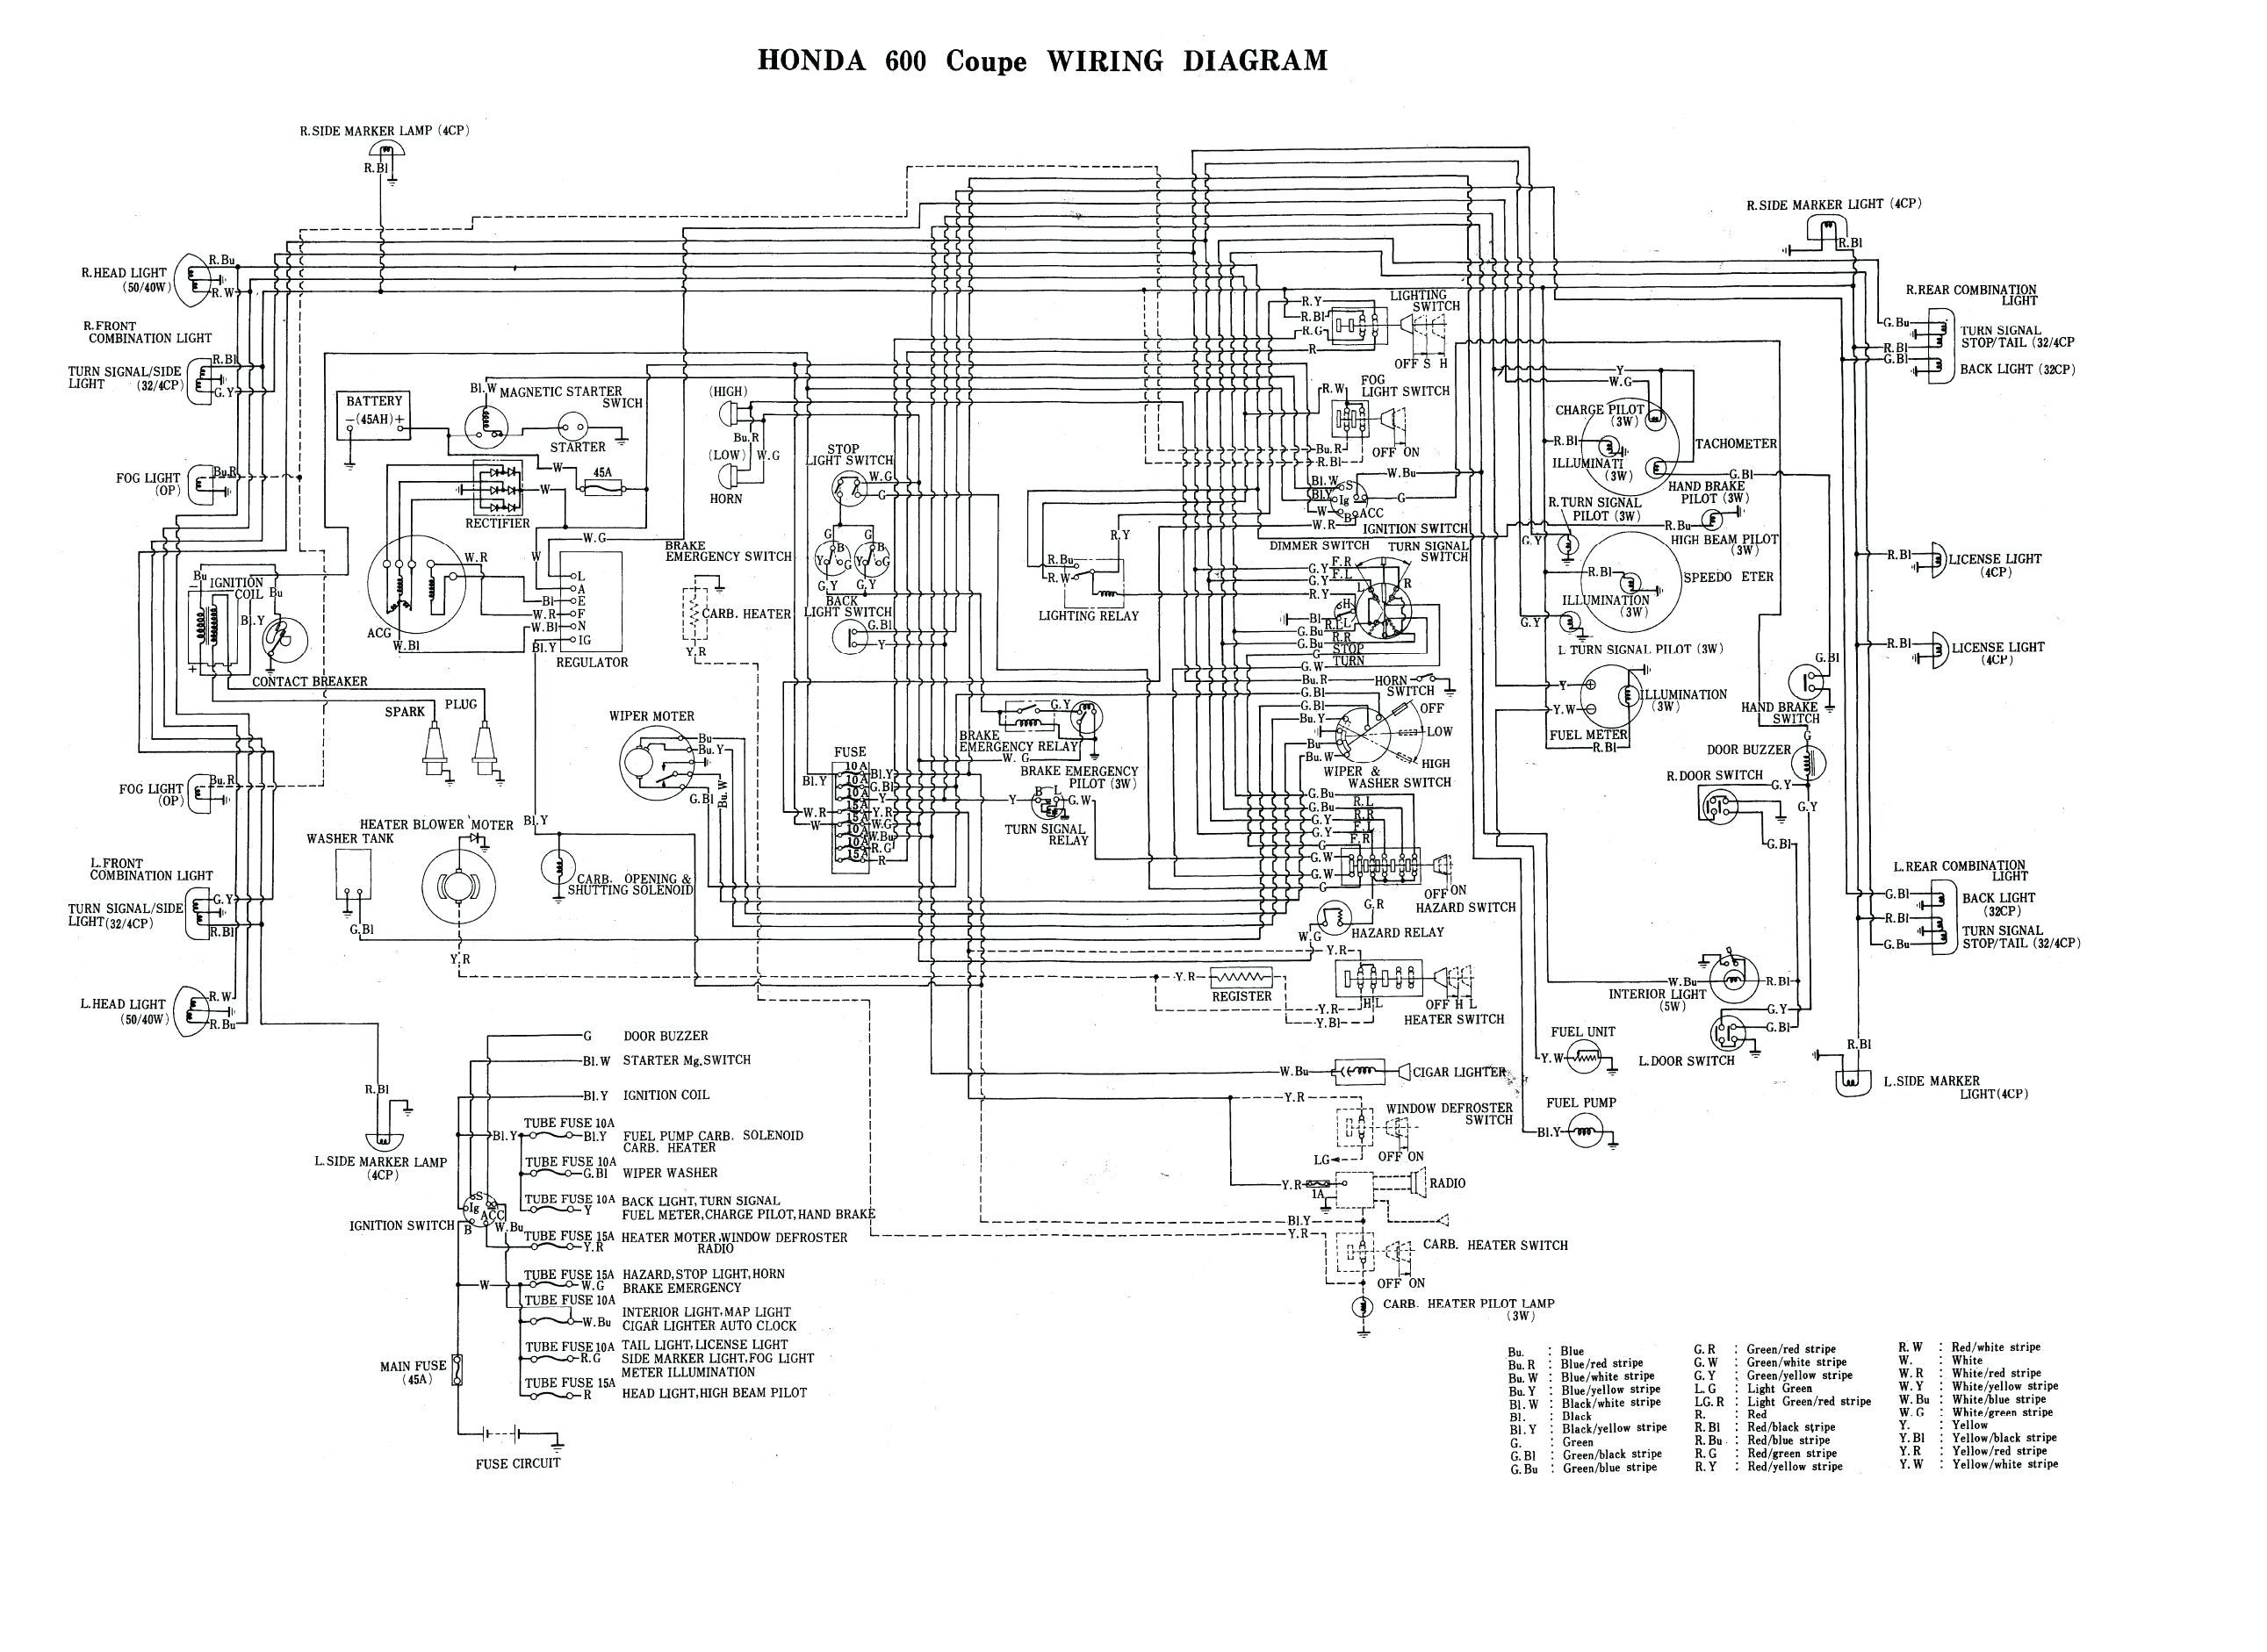 2007 Honda Accord Engine Diagram 1997 Honda Accord Engine Diagram Wiring Diagram Used Of 2007 Honda Accord Engine Diagram